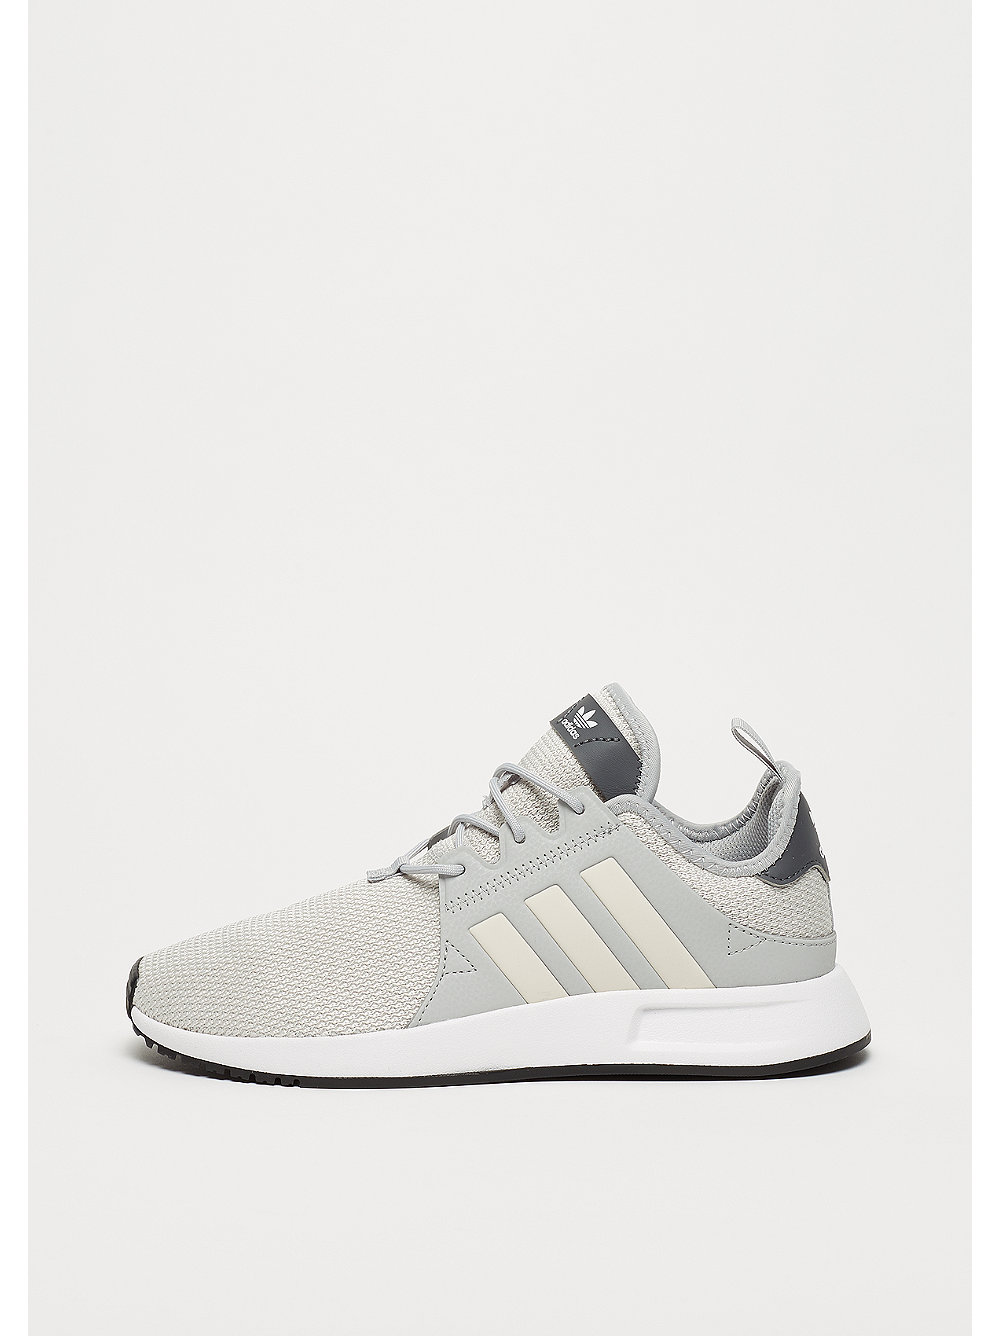 adidas x plr j grey two orchid tint bei snipes. Black Bedroom Furniture Sets. Home Design Ideas